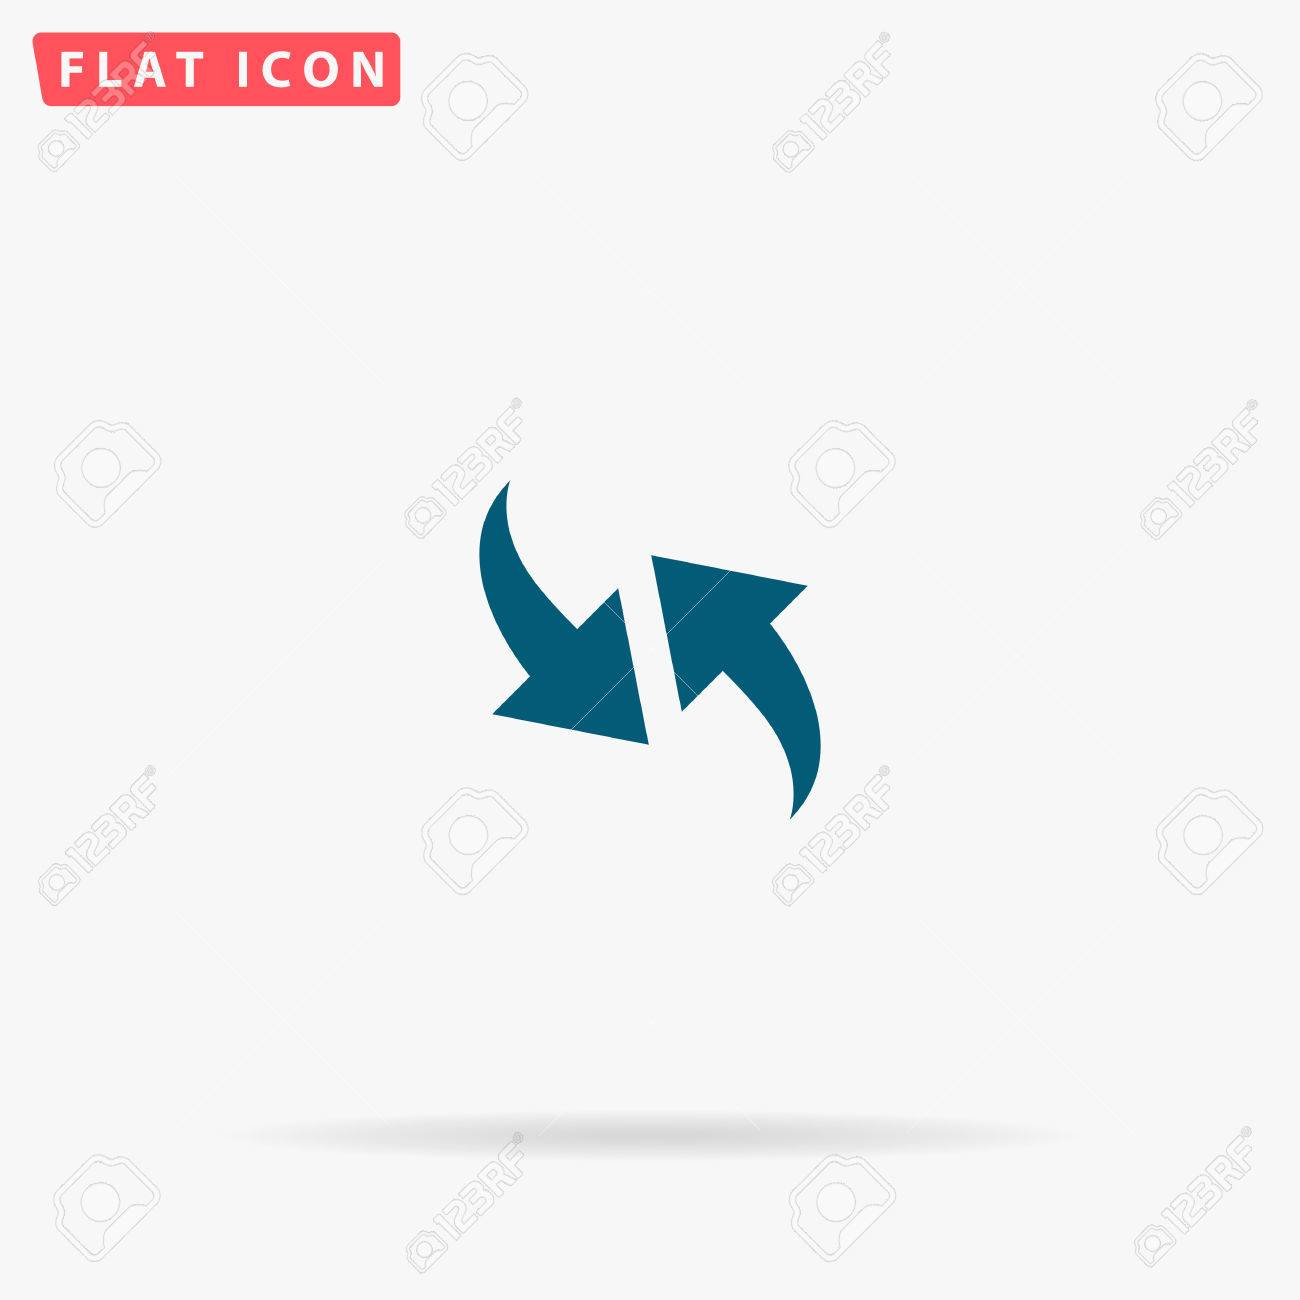 Two Side Arrow Icon Vector Flat Simple Blue Pictogram On White